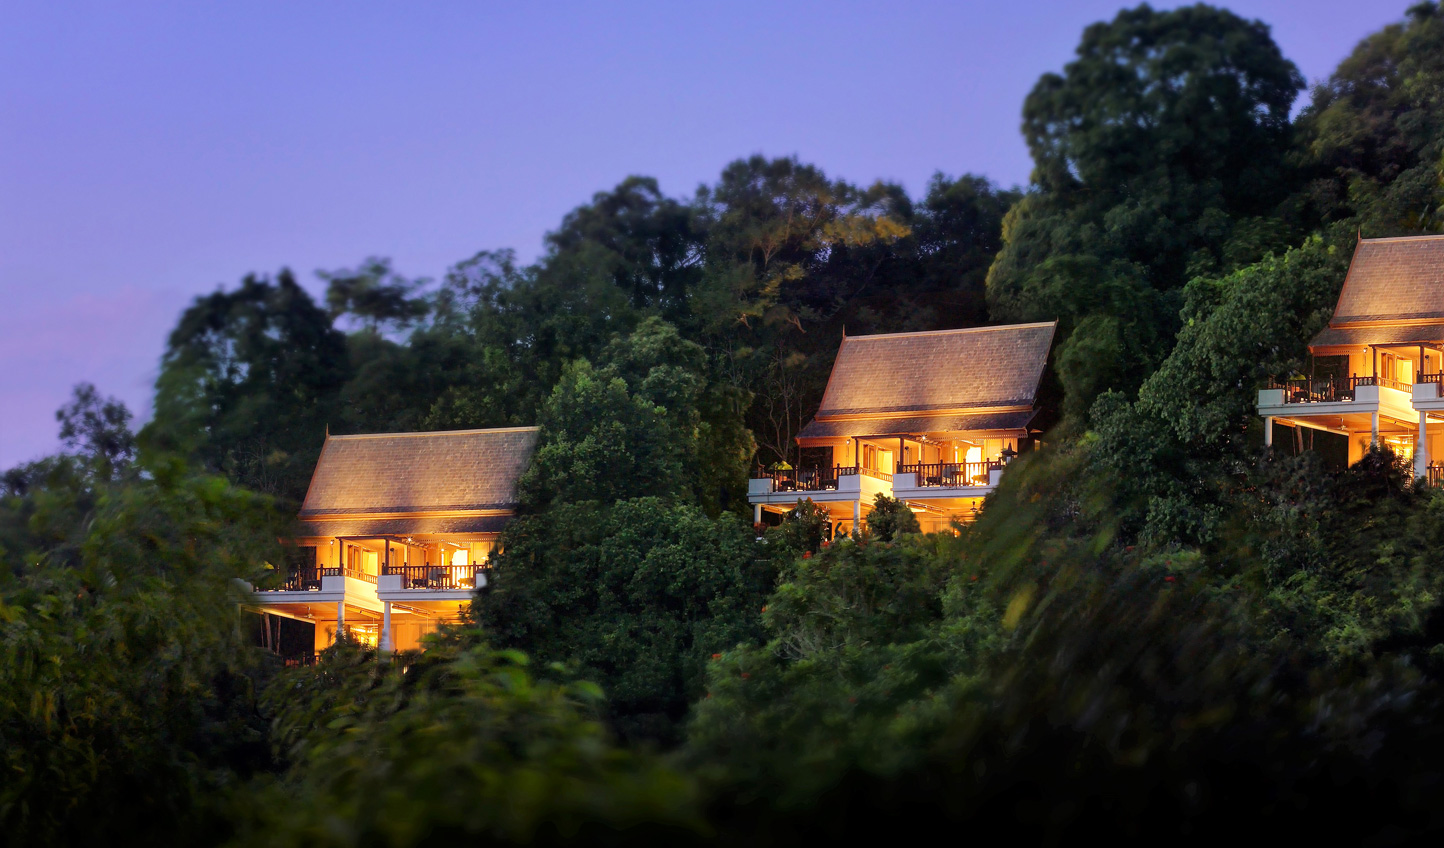 Stylish villas await at Pangkor Laut Resort